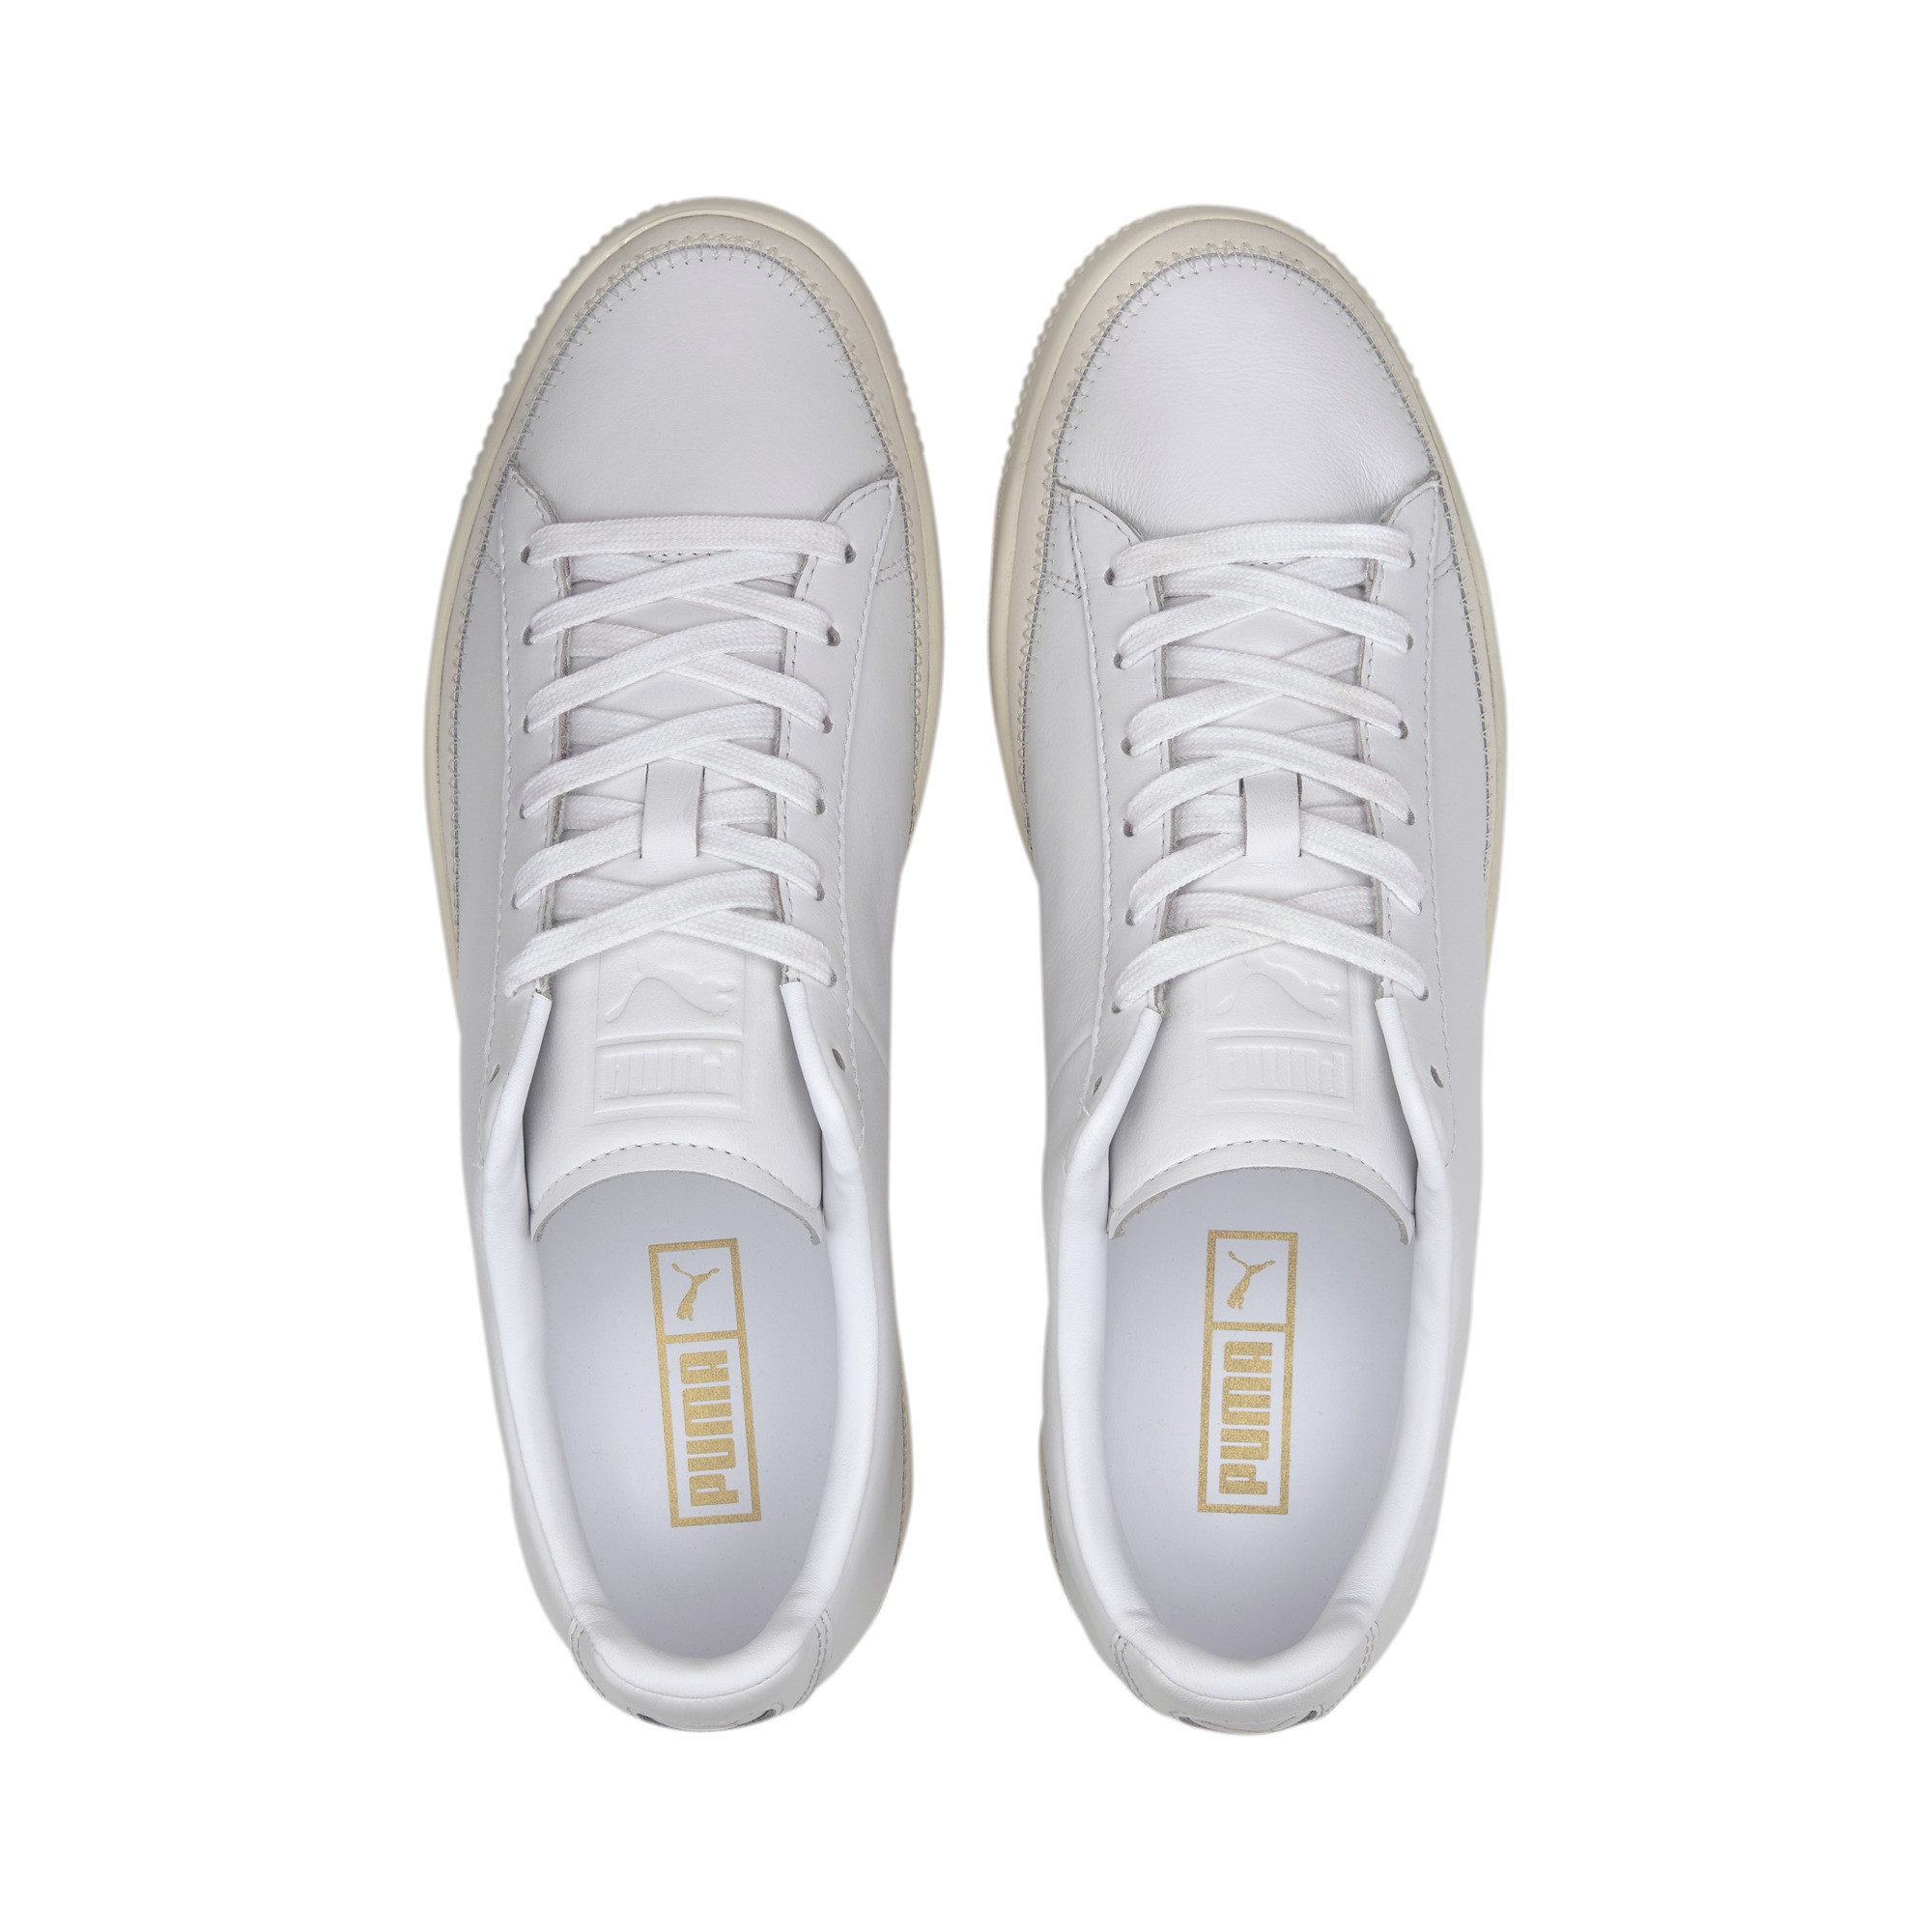 PUMA-Men-039-s-Basket-Trim-PRM-Sneakers thumbnail 22